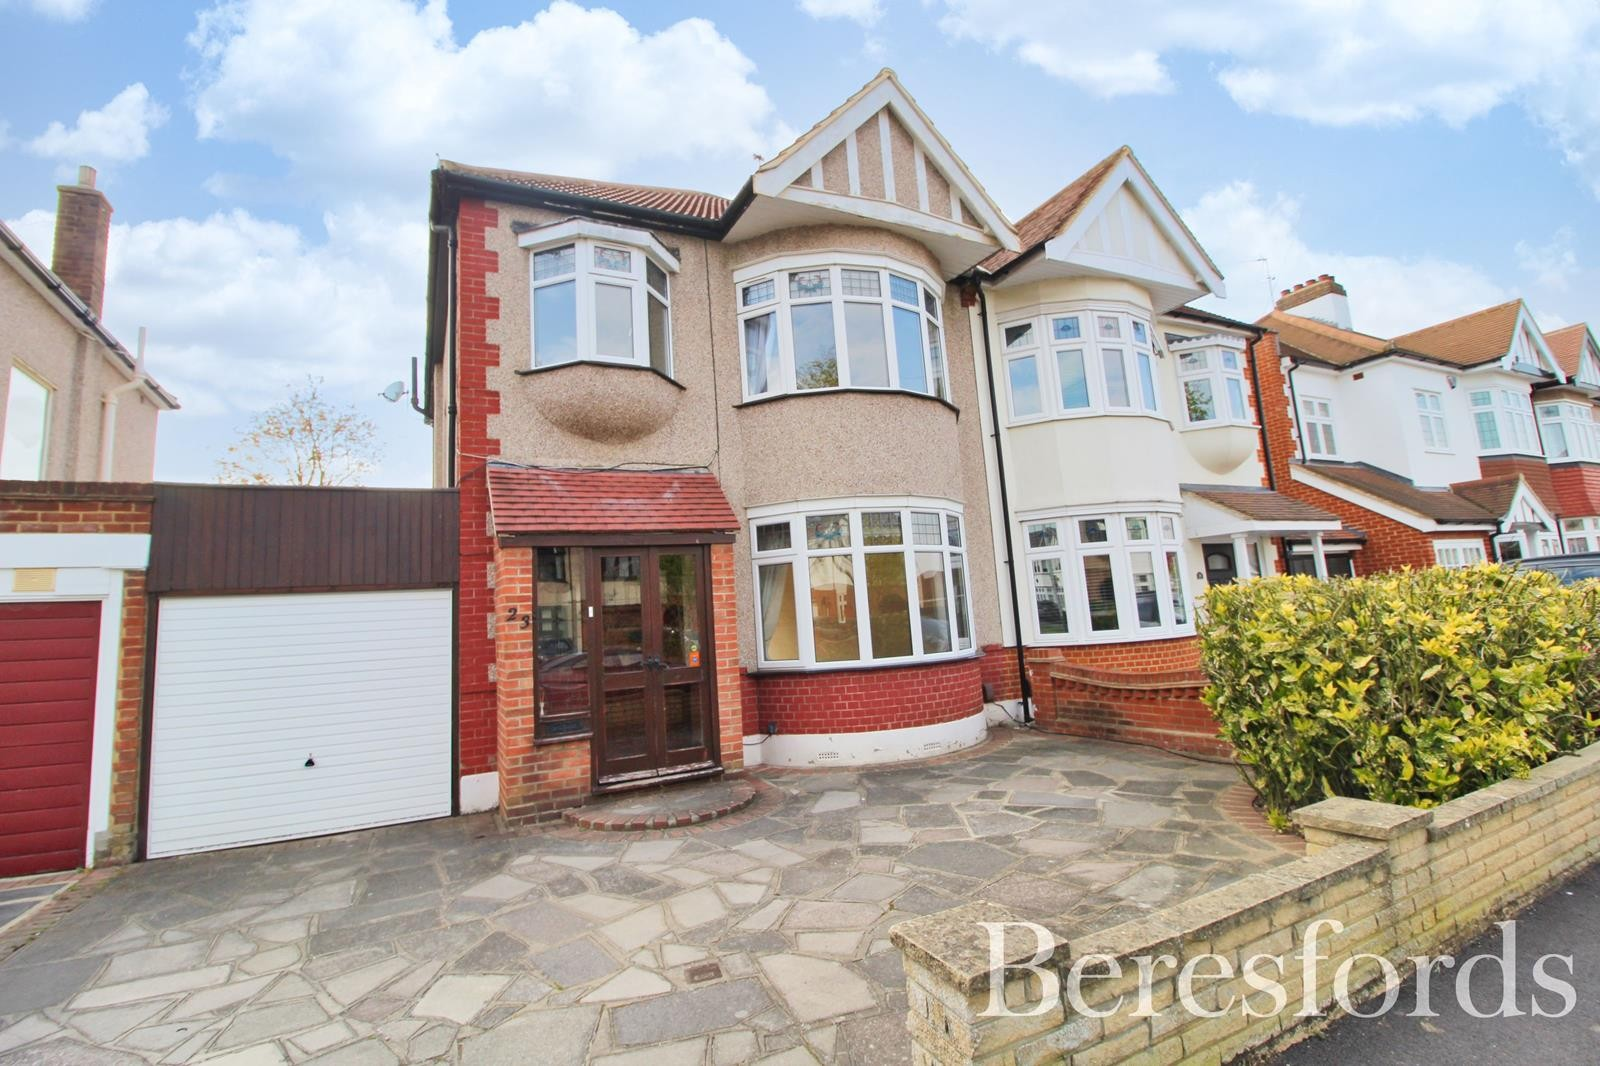 Oak Avenue, Upminster, Essex, RM14